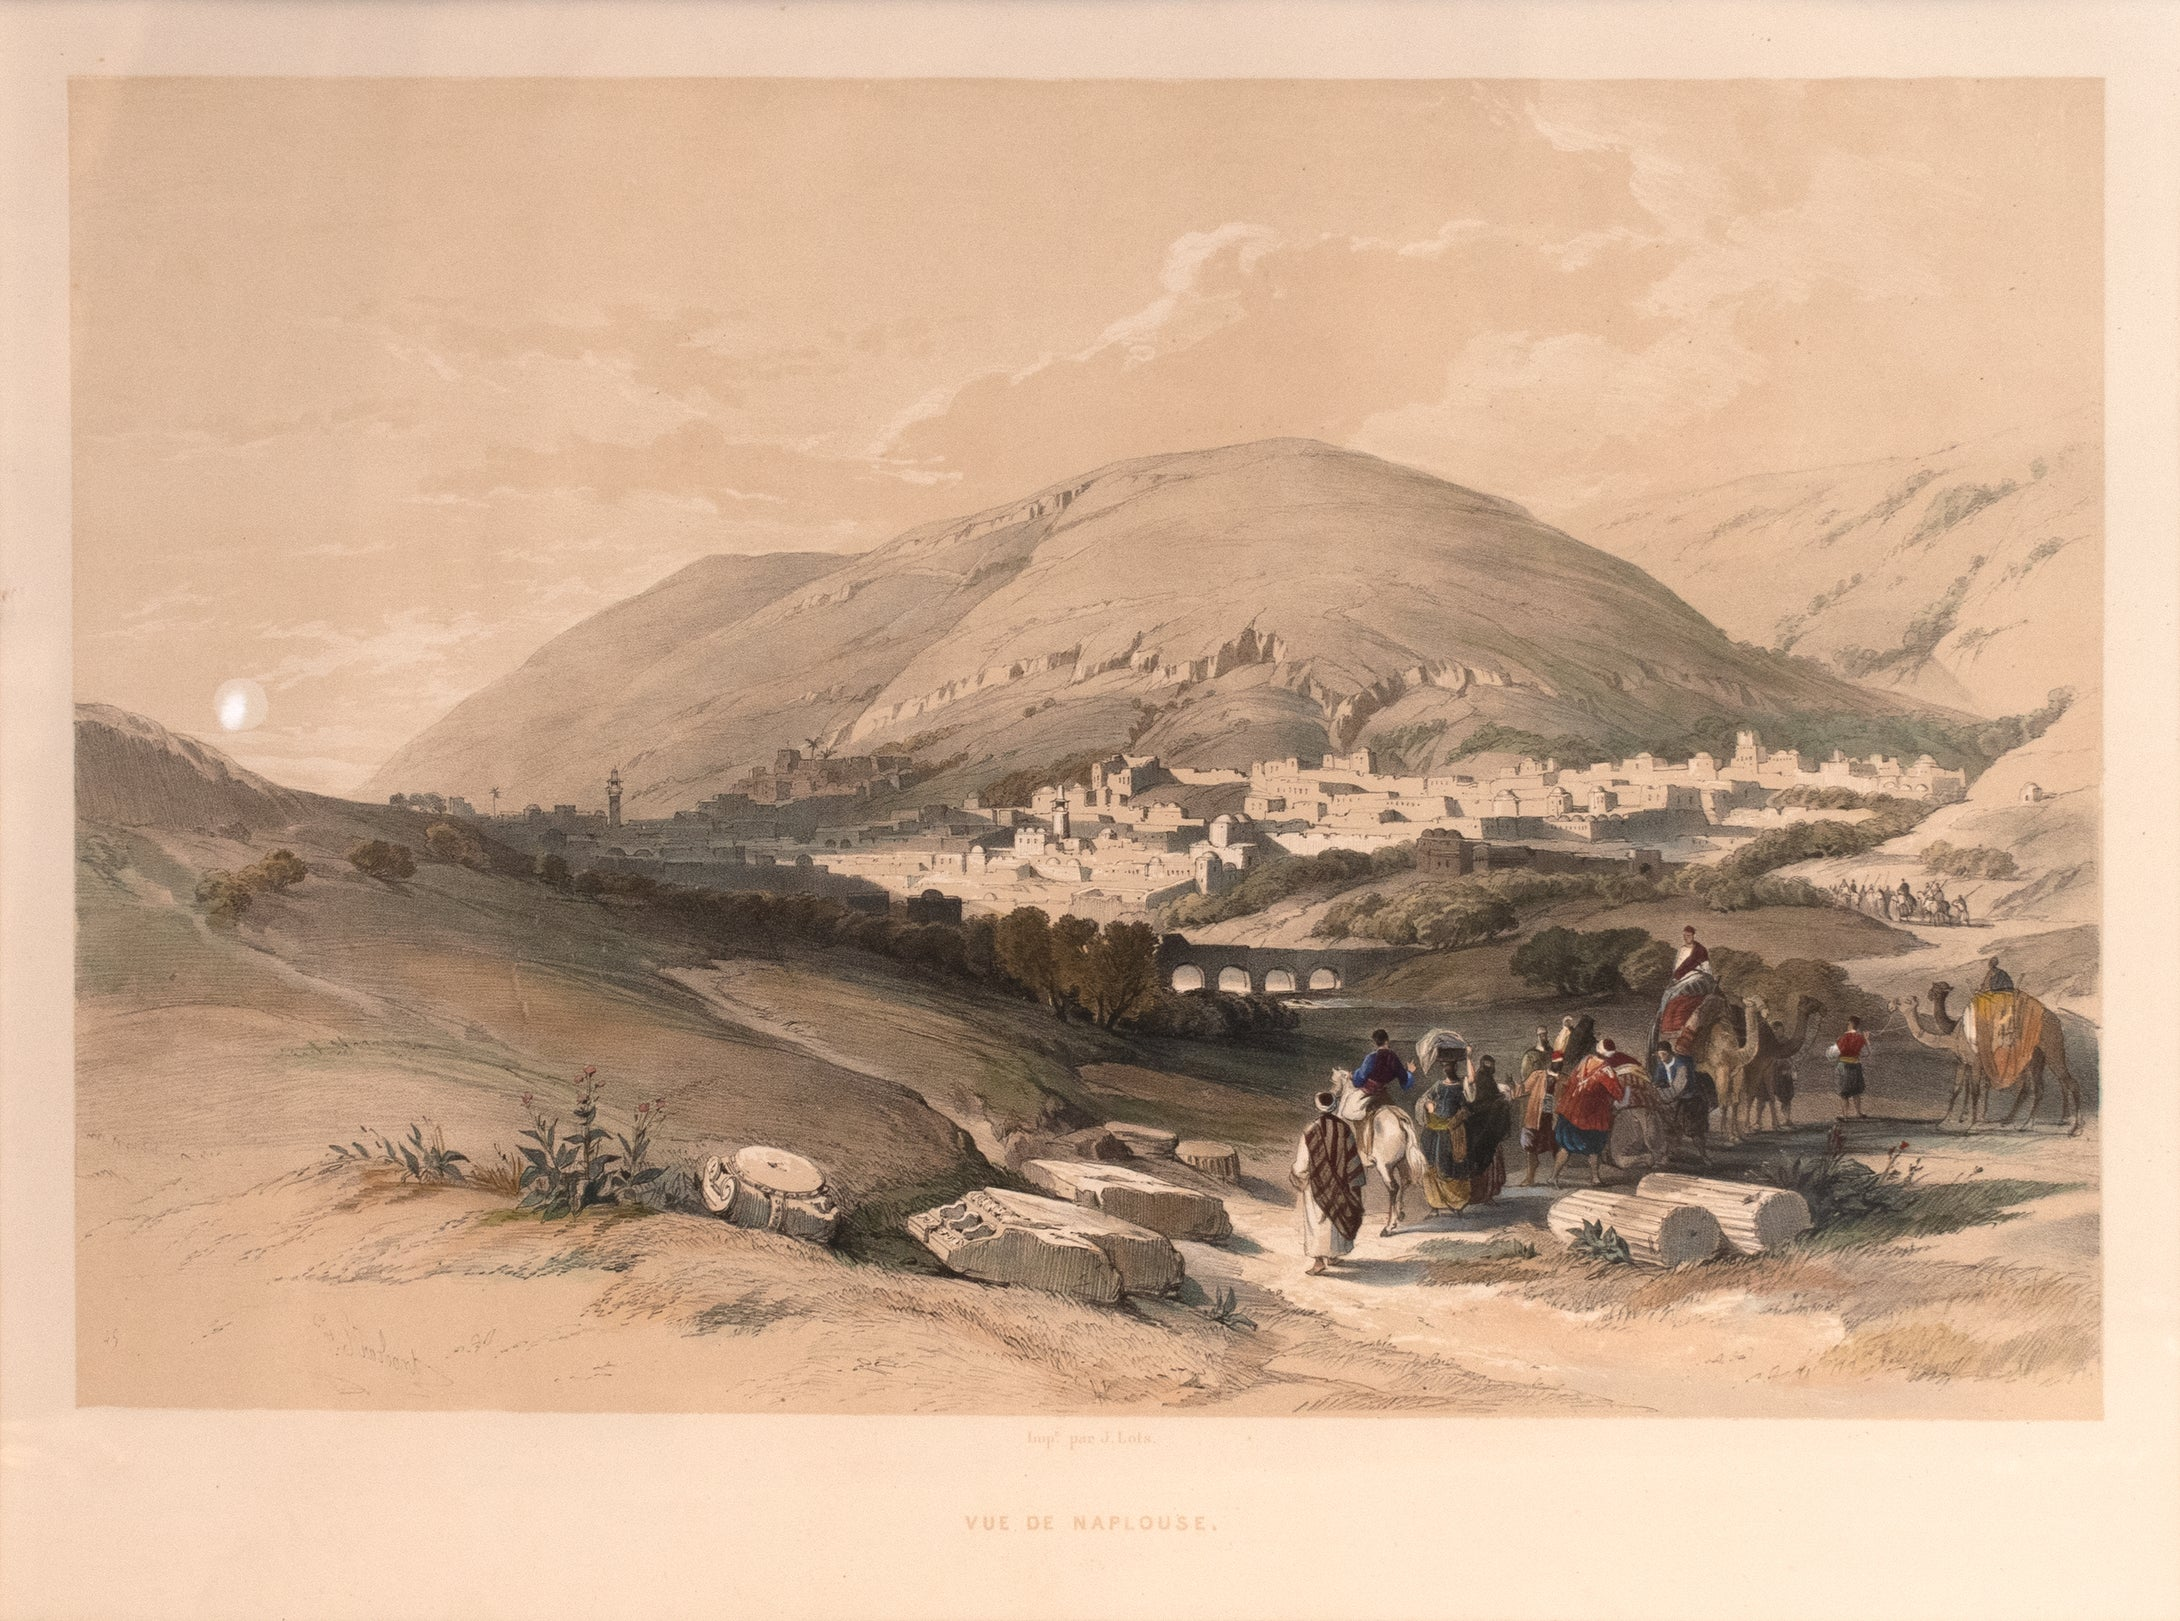 View of Nablus: David Roberts 1843